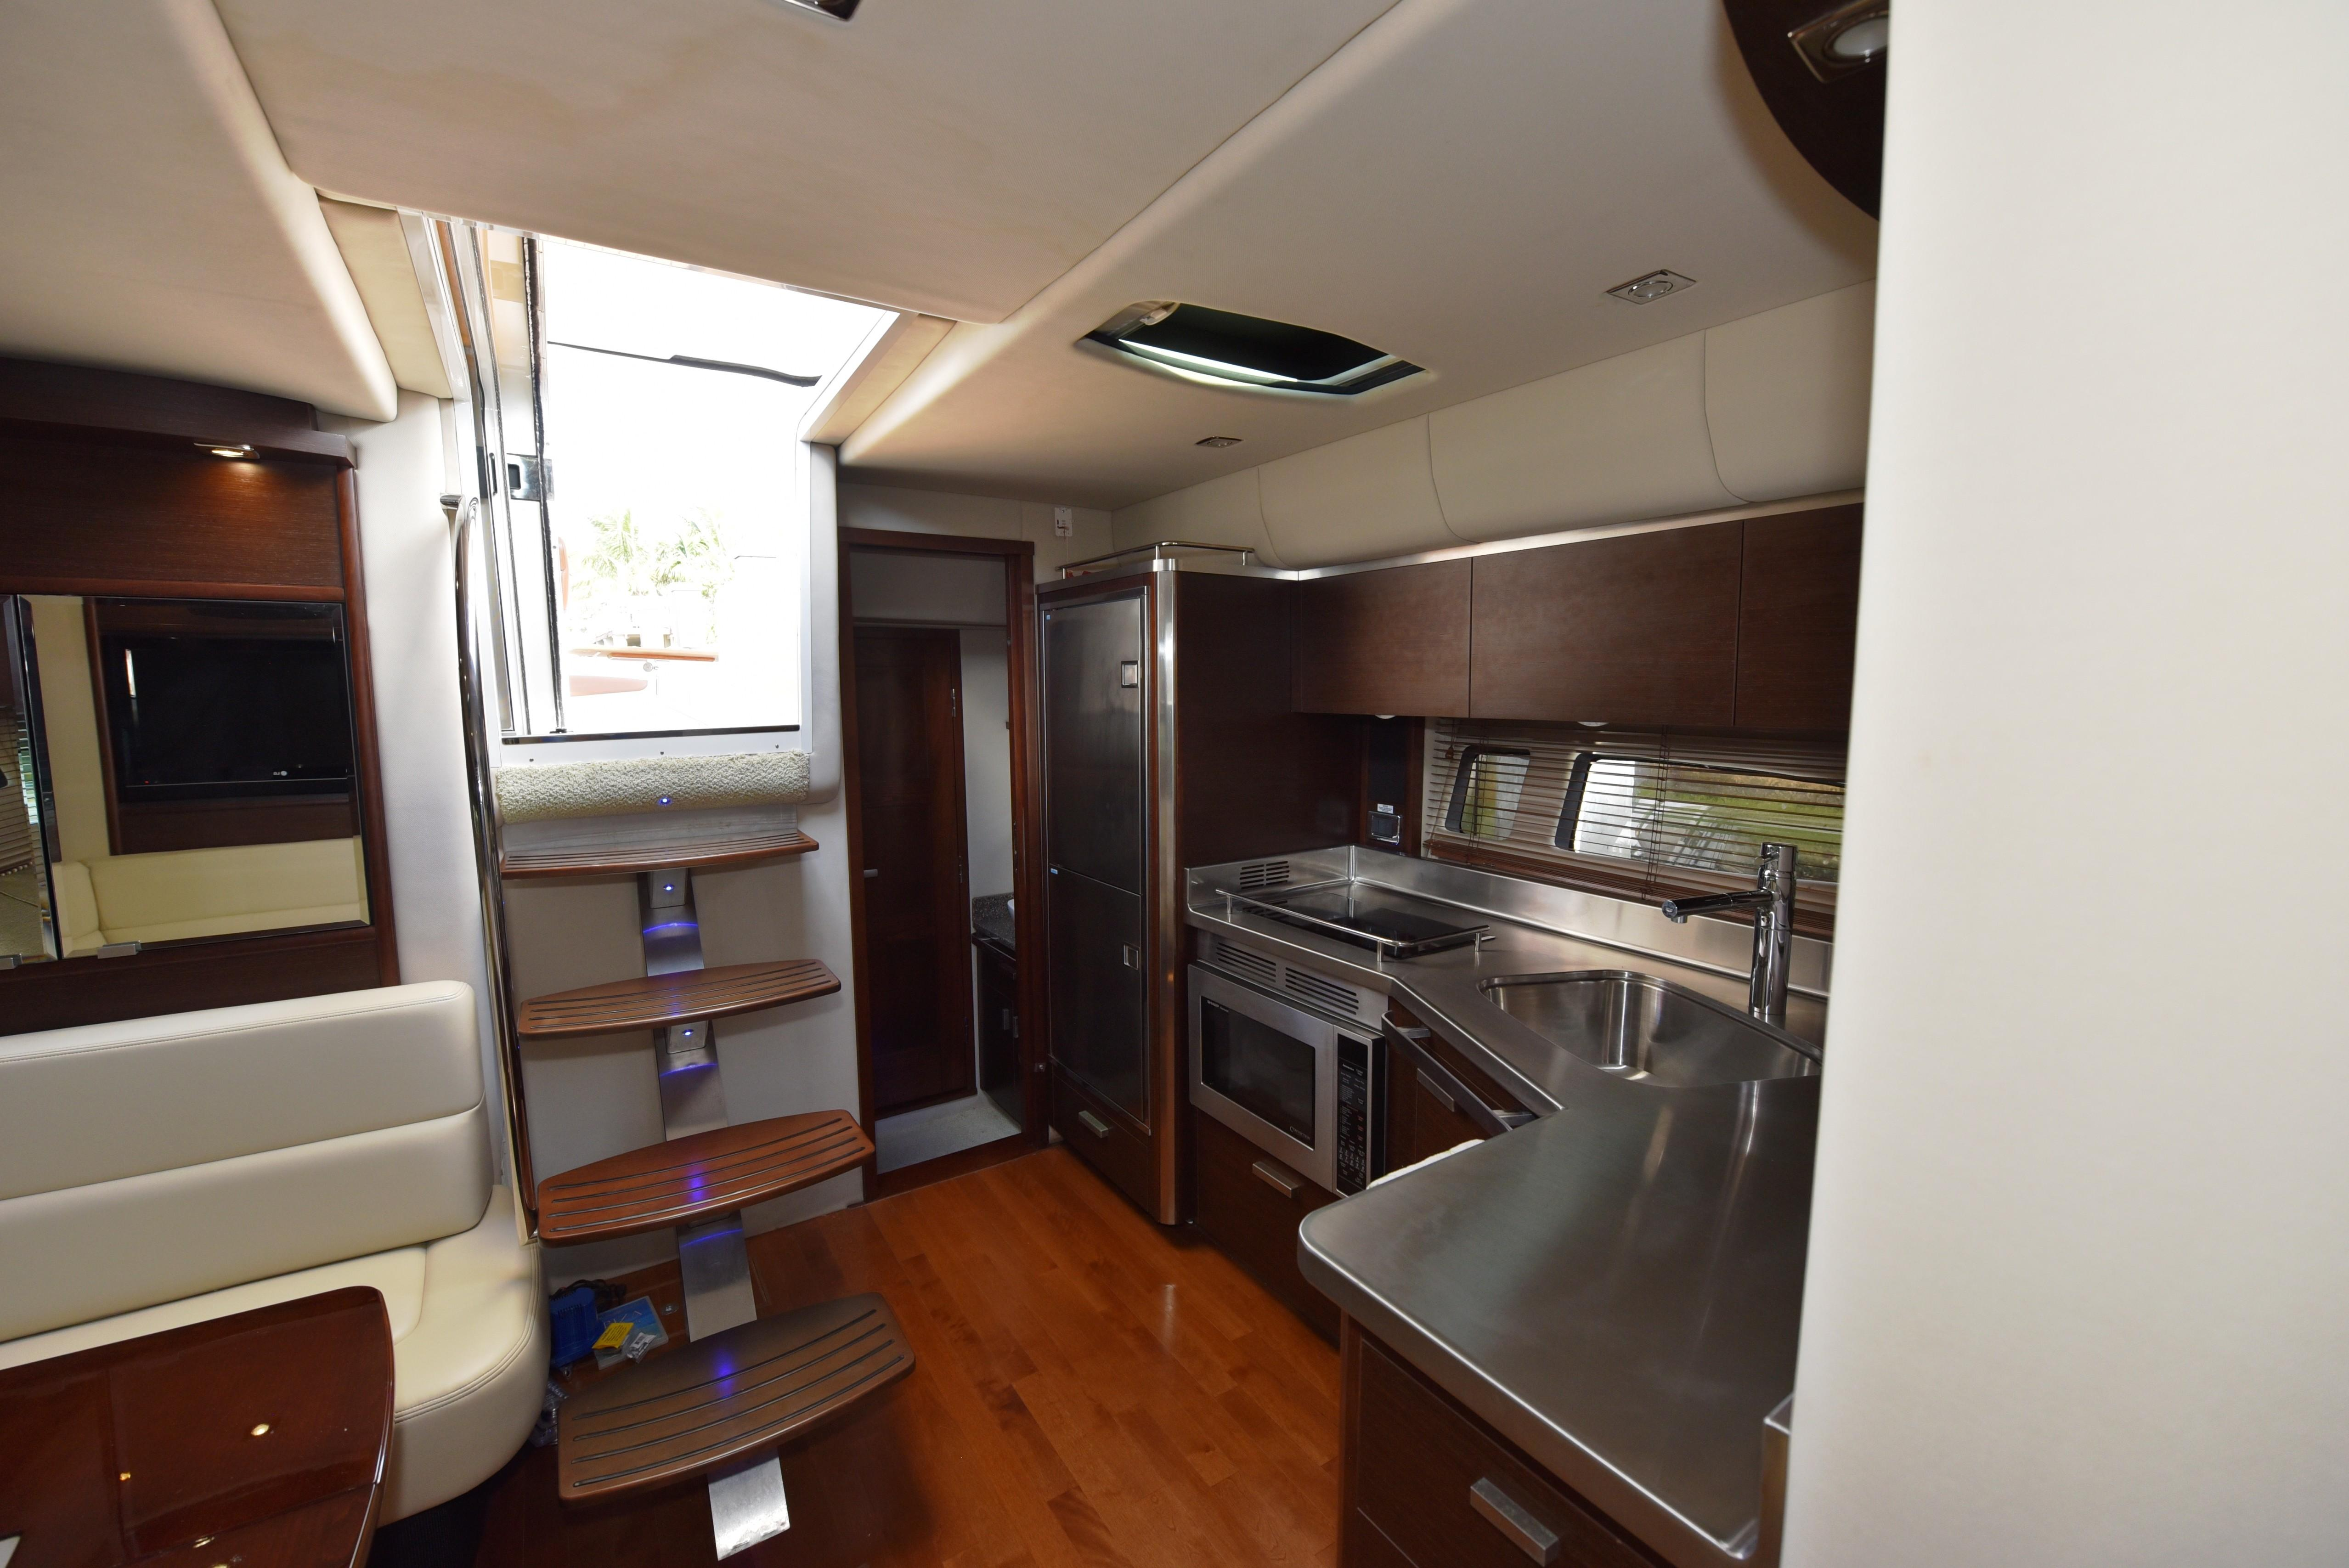 2010 Chaparral 400 Premier- Galley